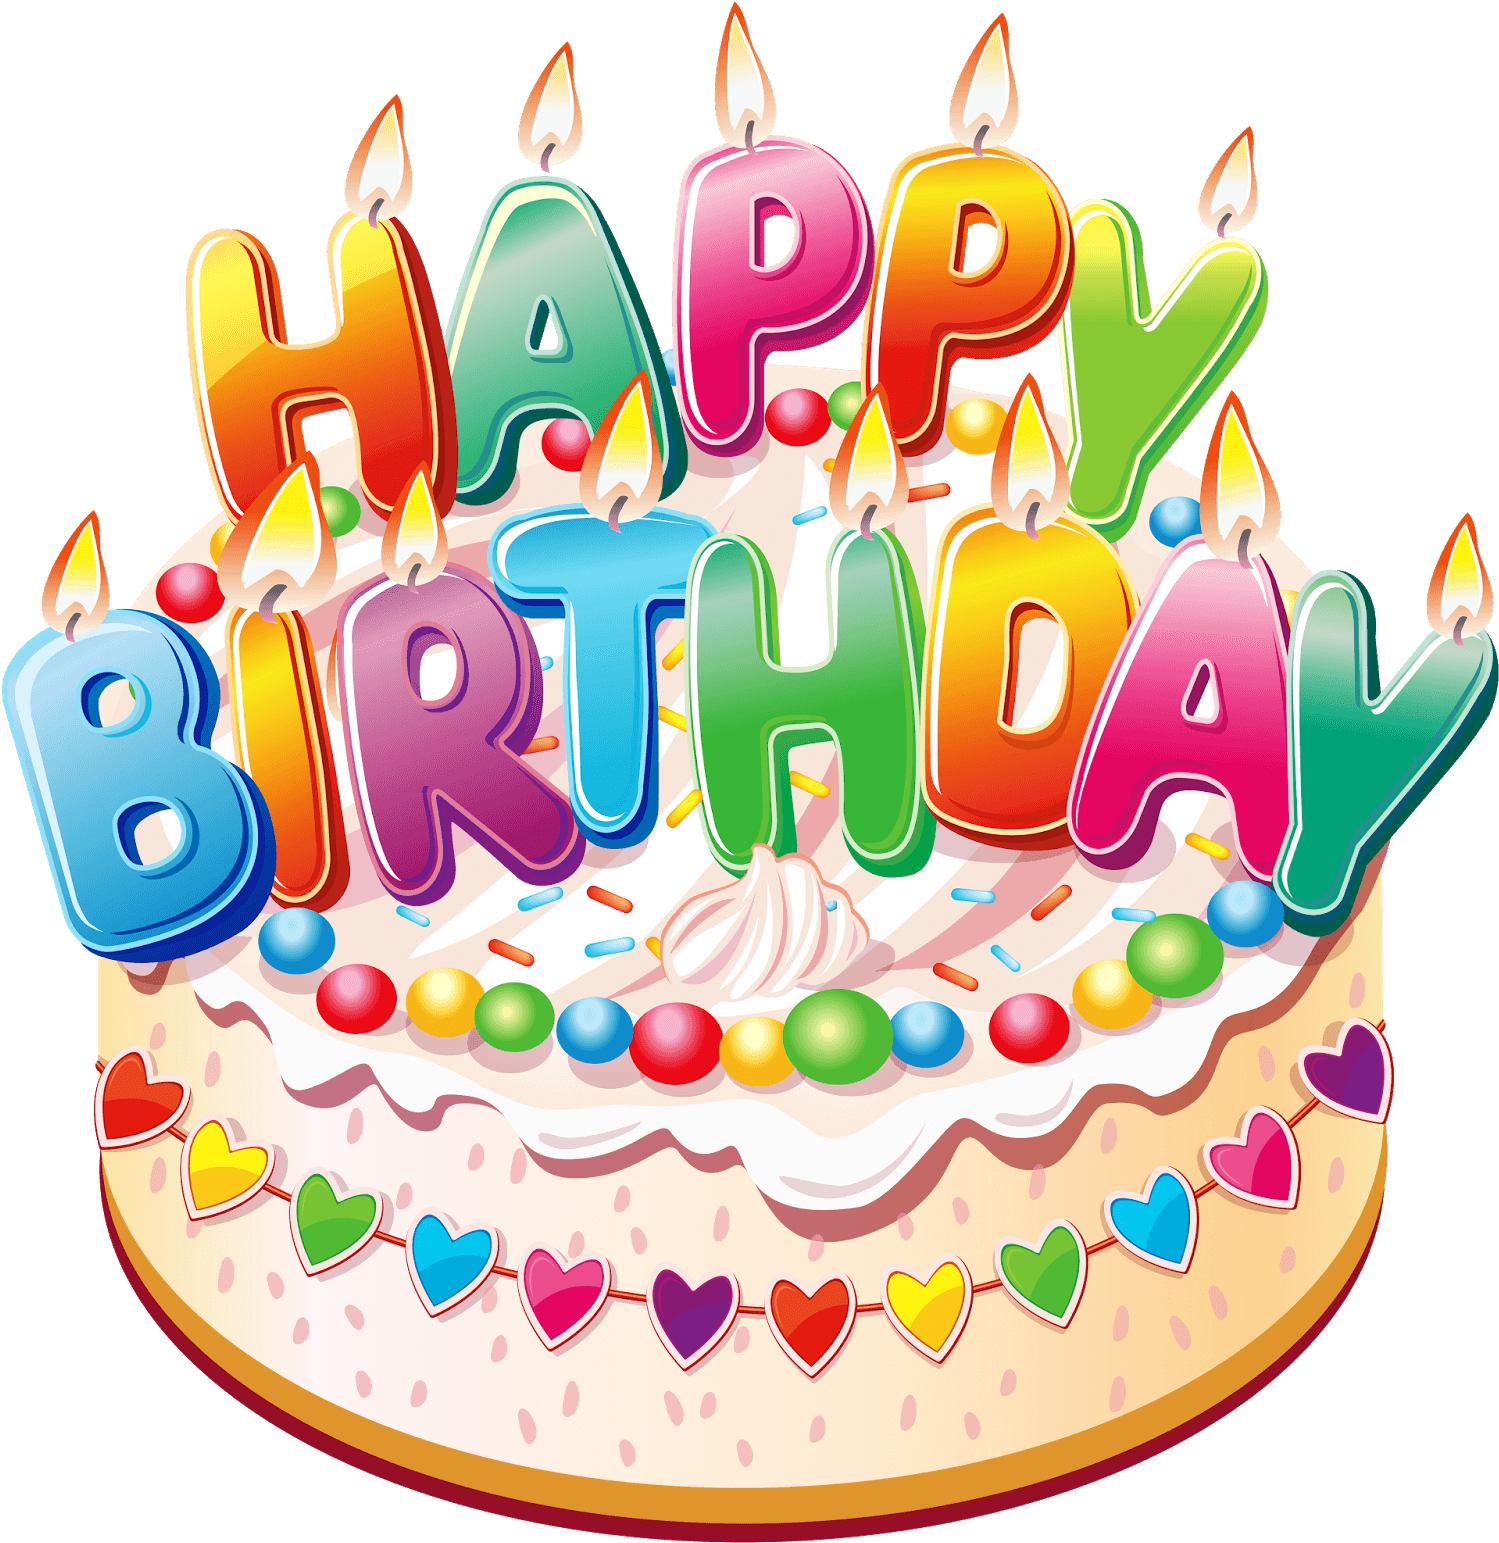 Awe Inspiring Happy Birthday Cake Png Clipart Full Size Clipart 839903 Funny Birthday Cards Online Alyptdamsfinfo